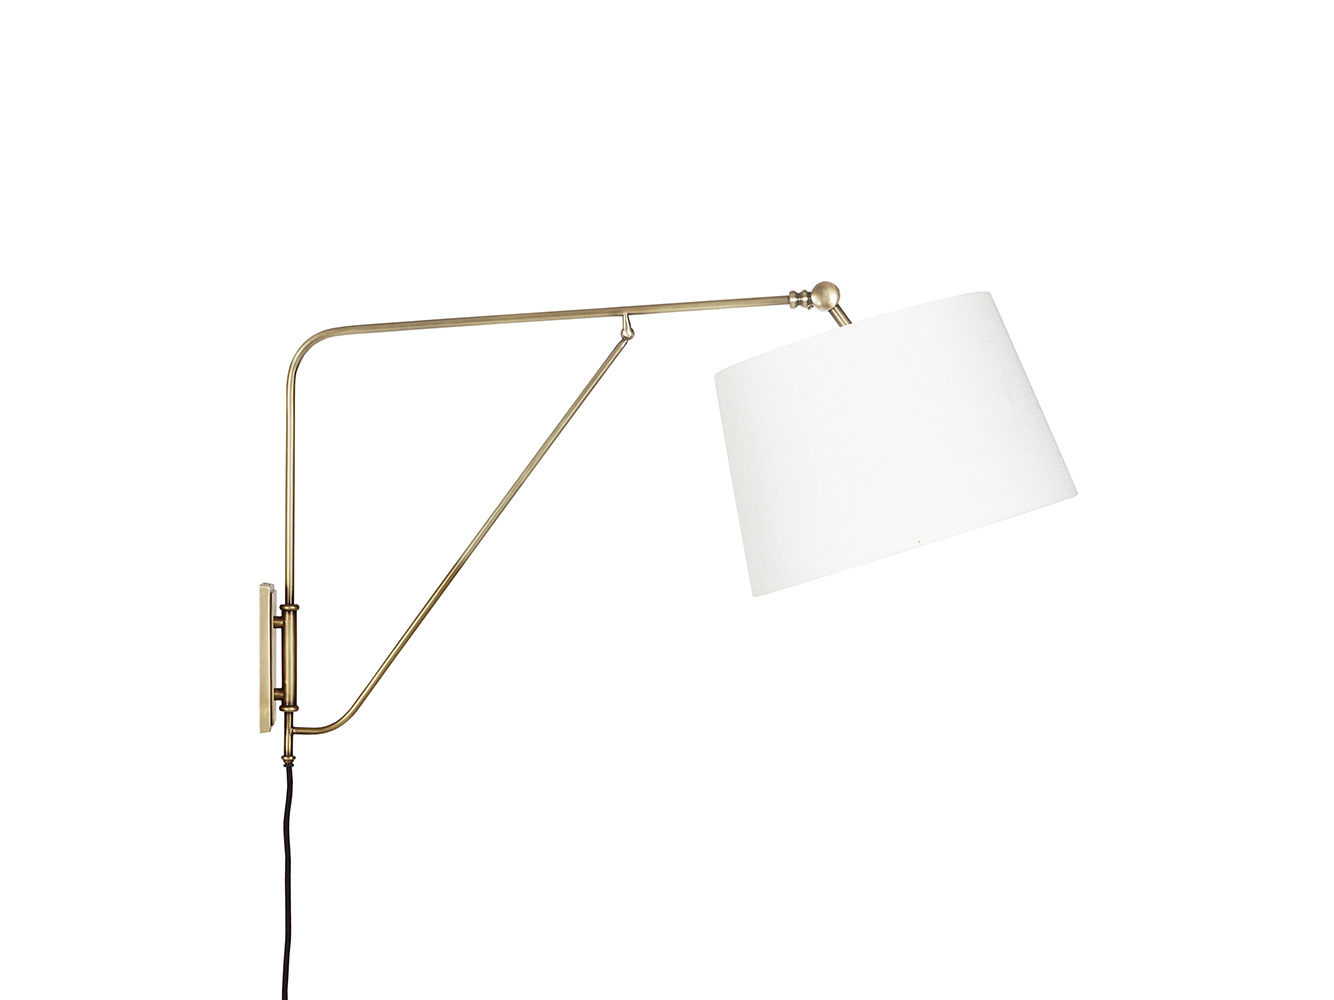 Yard Arm Wall Light Swing